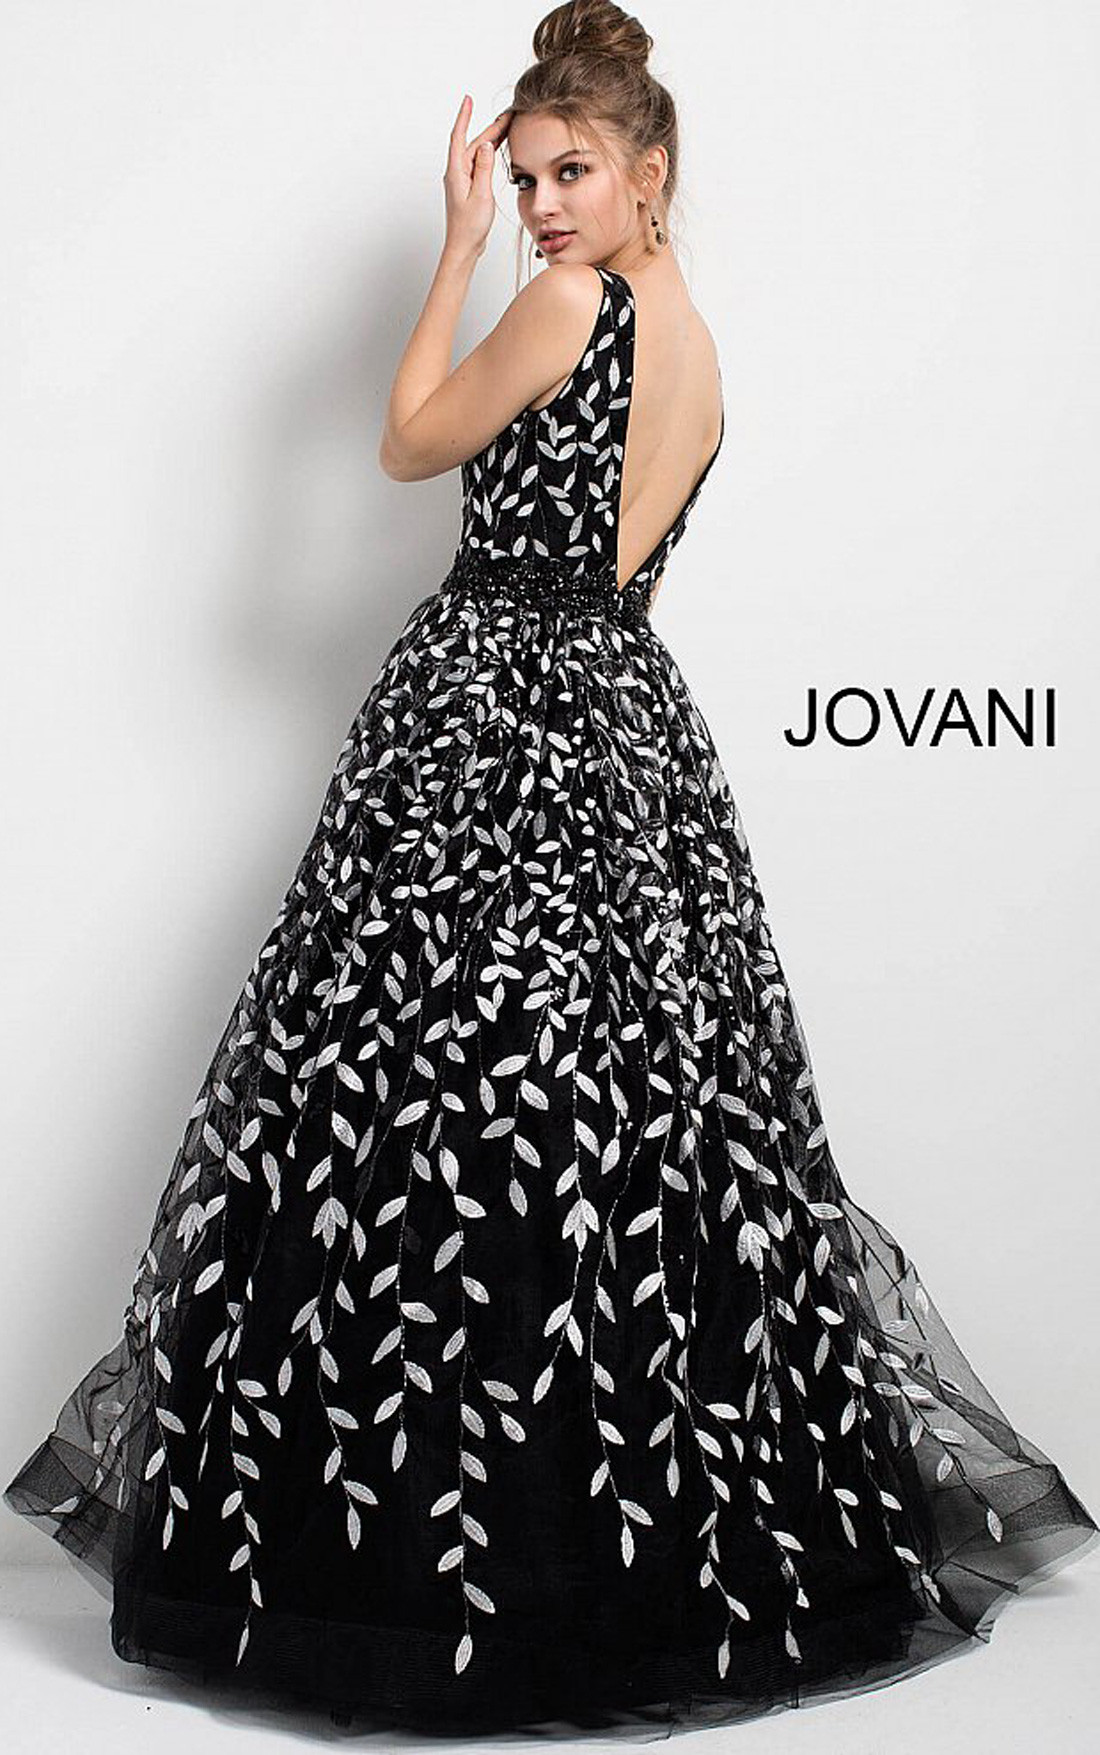 Jovani Dresses | Womens Black and White Floral Gown | Womens Dresses ...